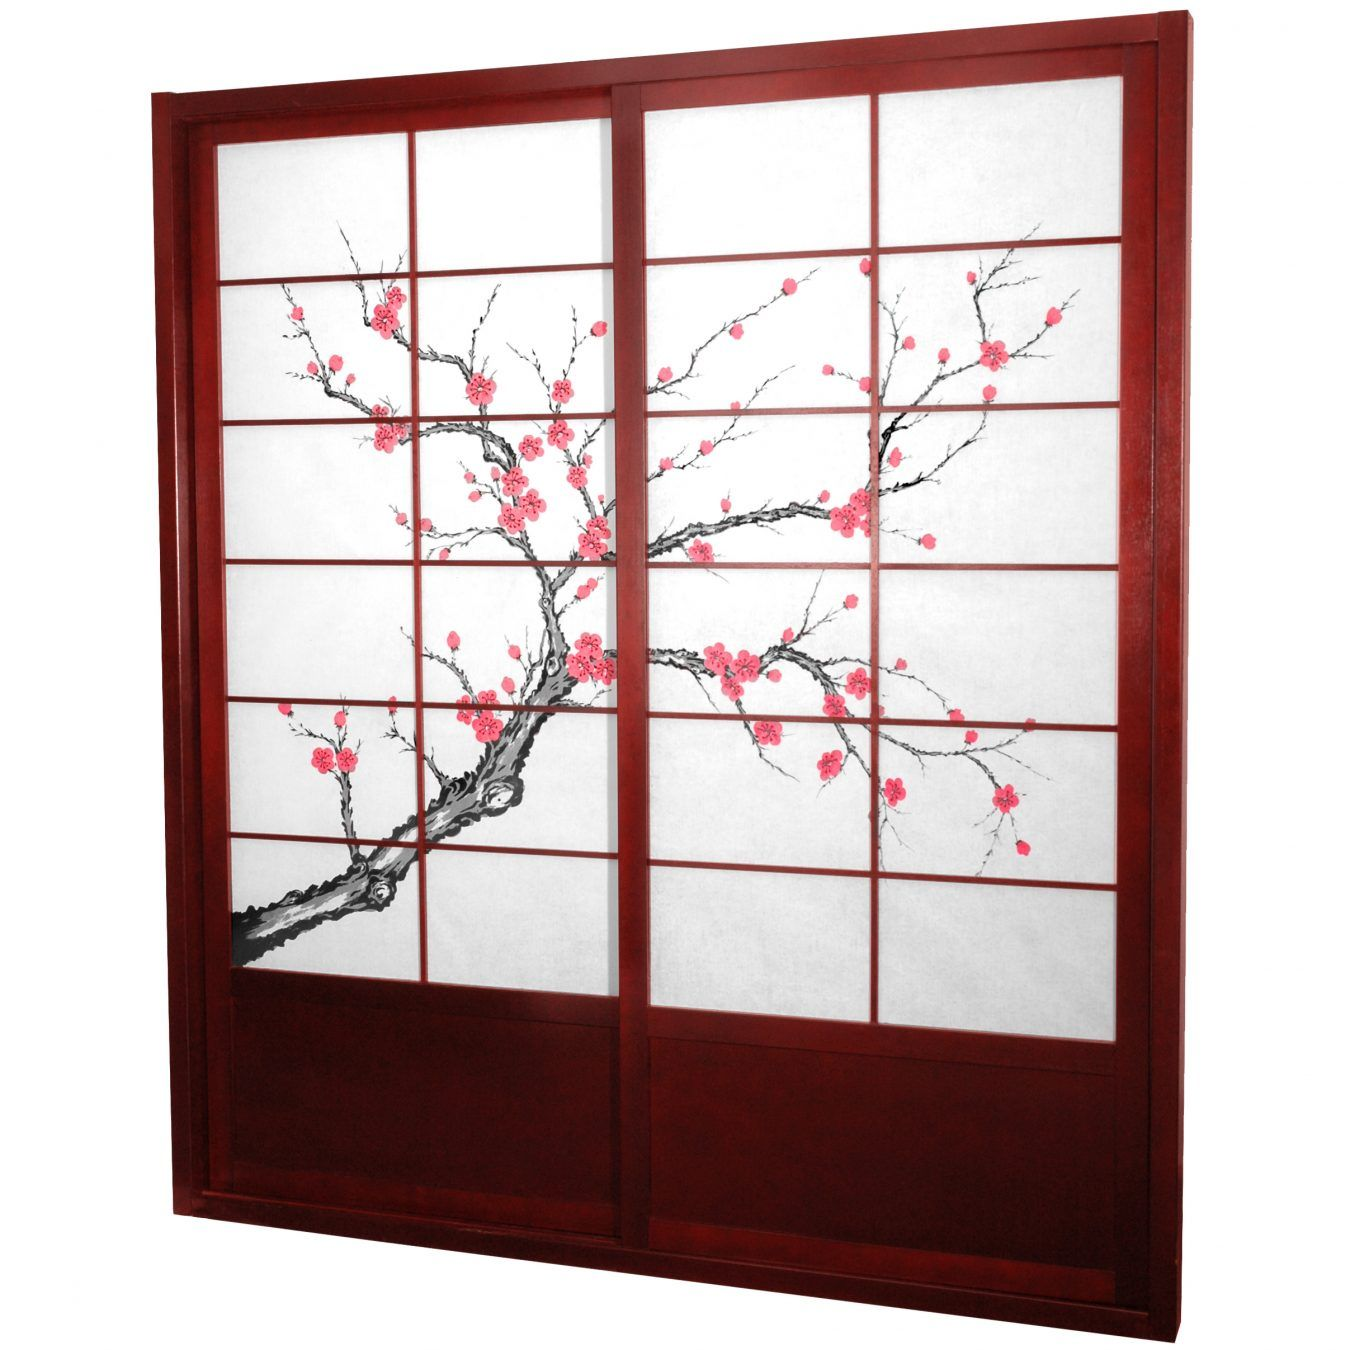 Tall Cherry Blossom Shoji Sliding Door Kit   Wide Selection Of Room  Dividers, Shoji Screens, Oriental And Asian Home Furnishings, Chinese Lamps  And ...